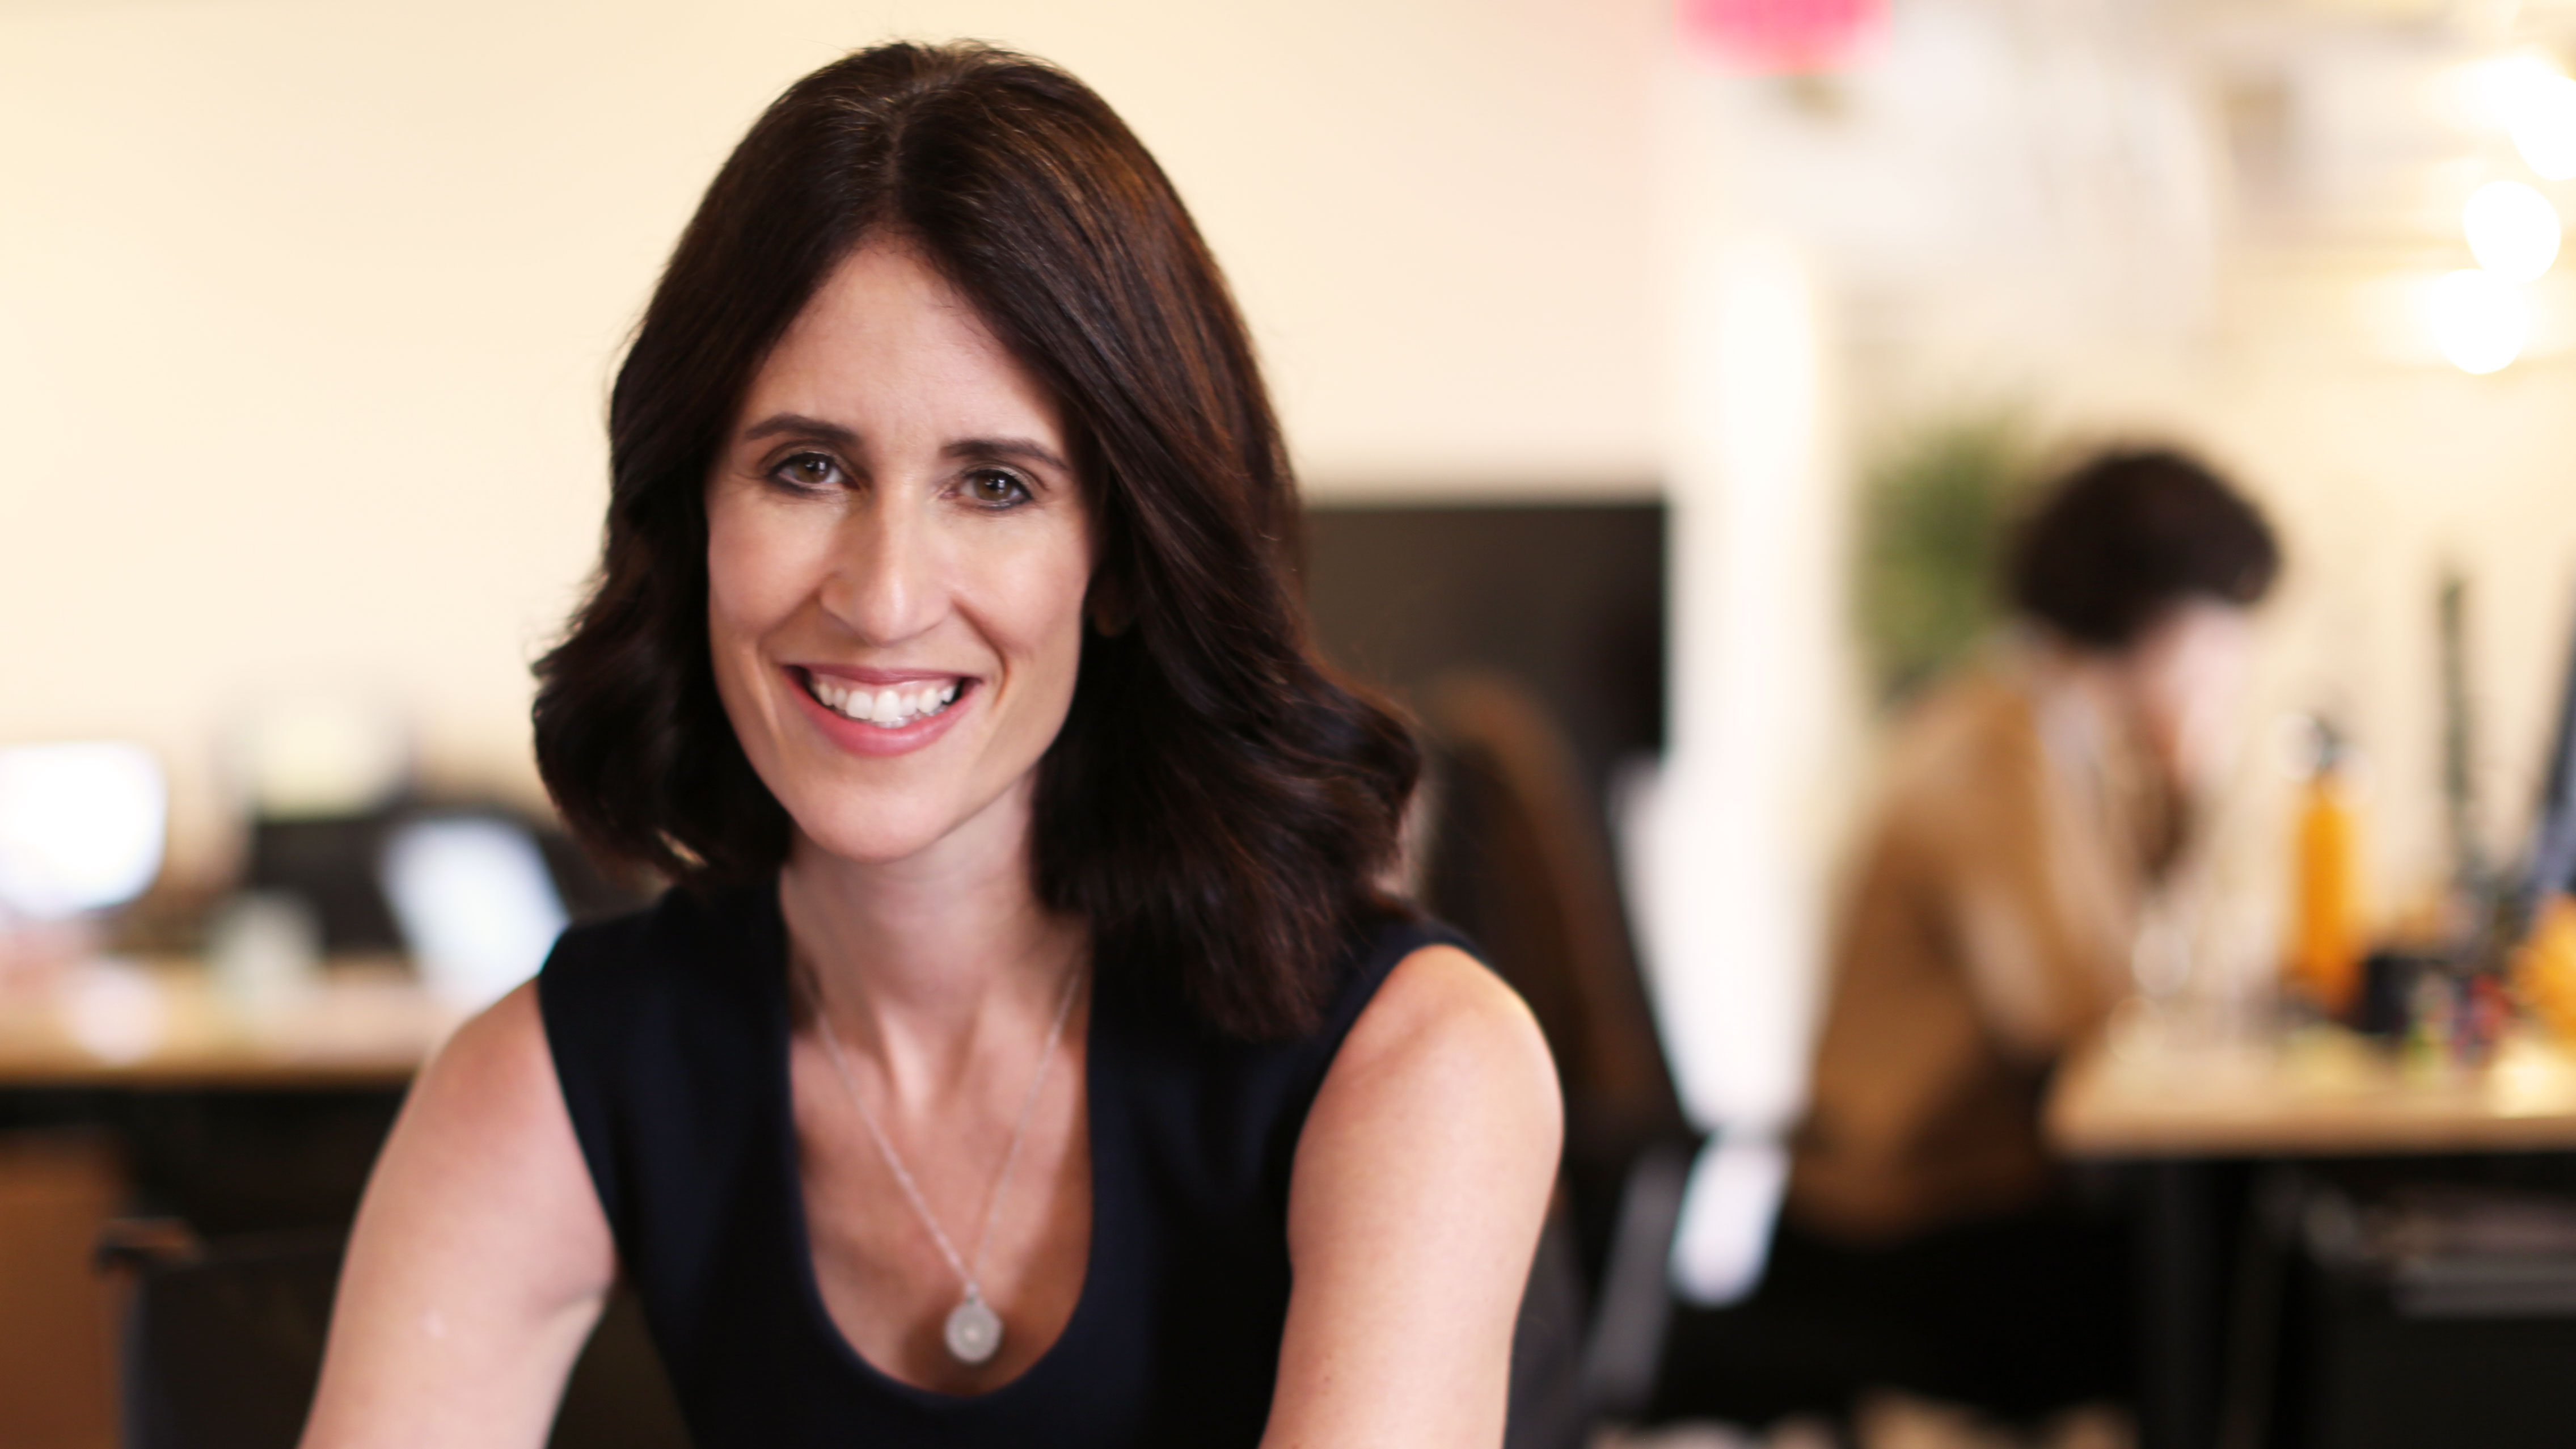 CVS Health names Michelle Peluso as first-ever Chief Customer Officer